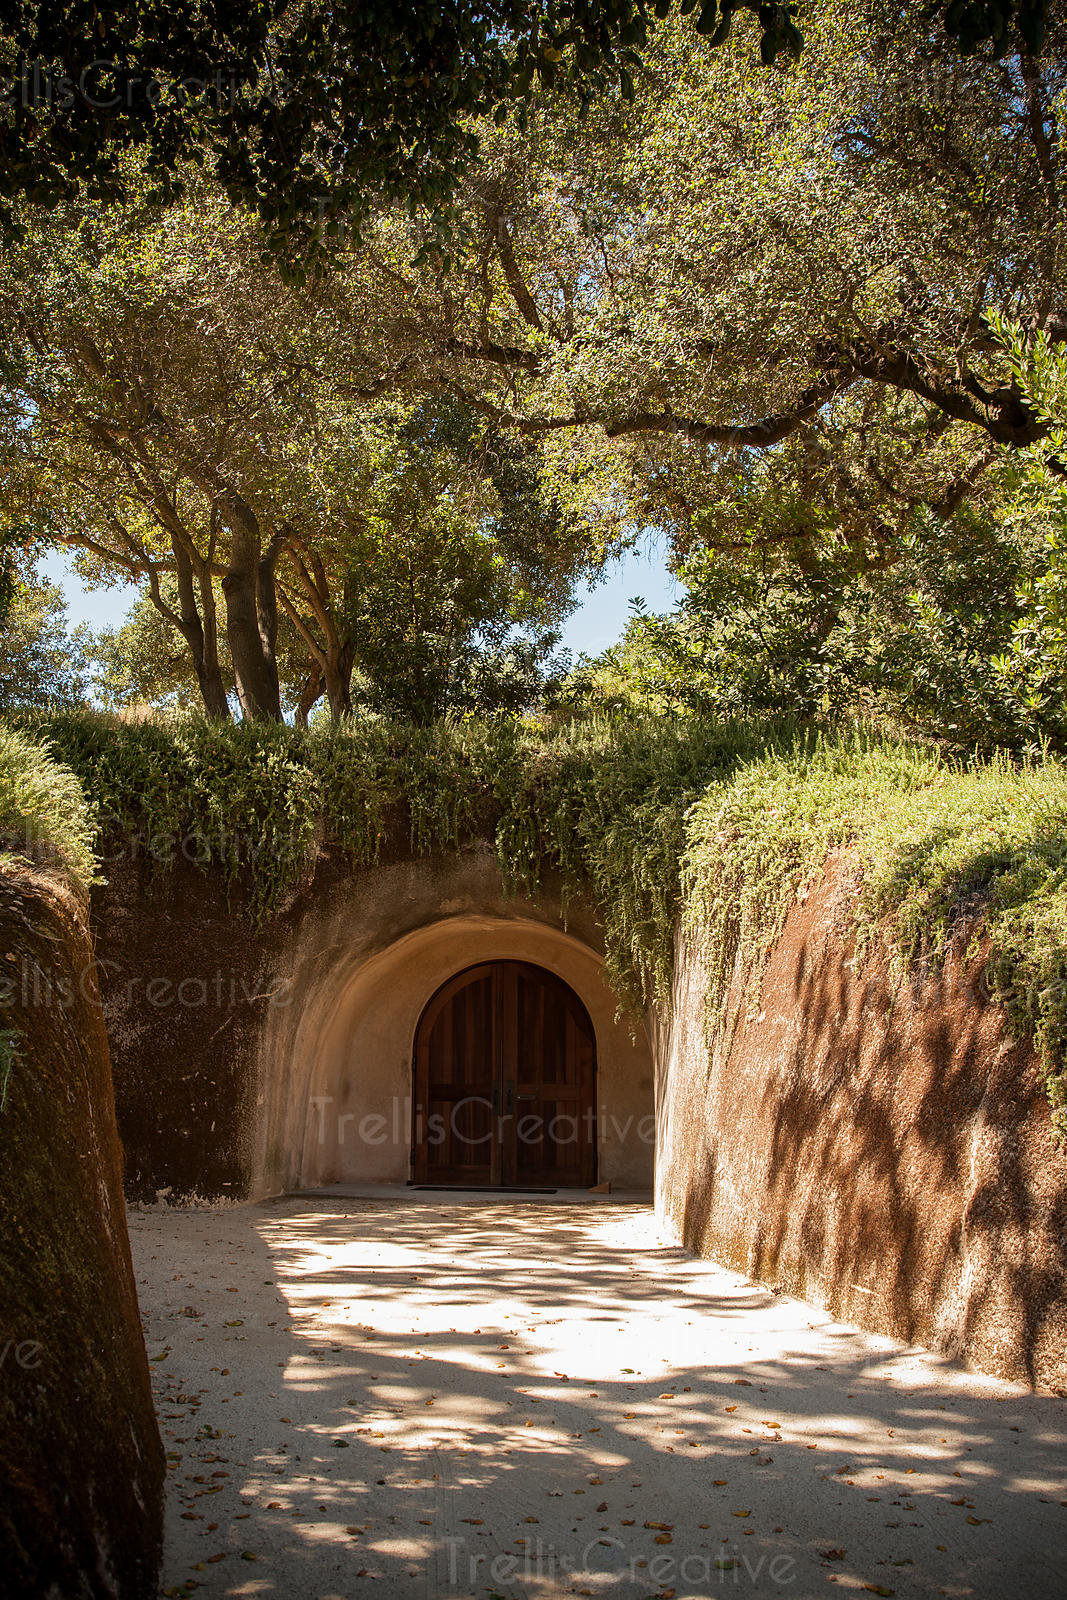 A hidden Napa Valley wine cave entrance covered by trees